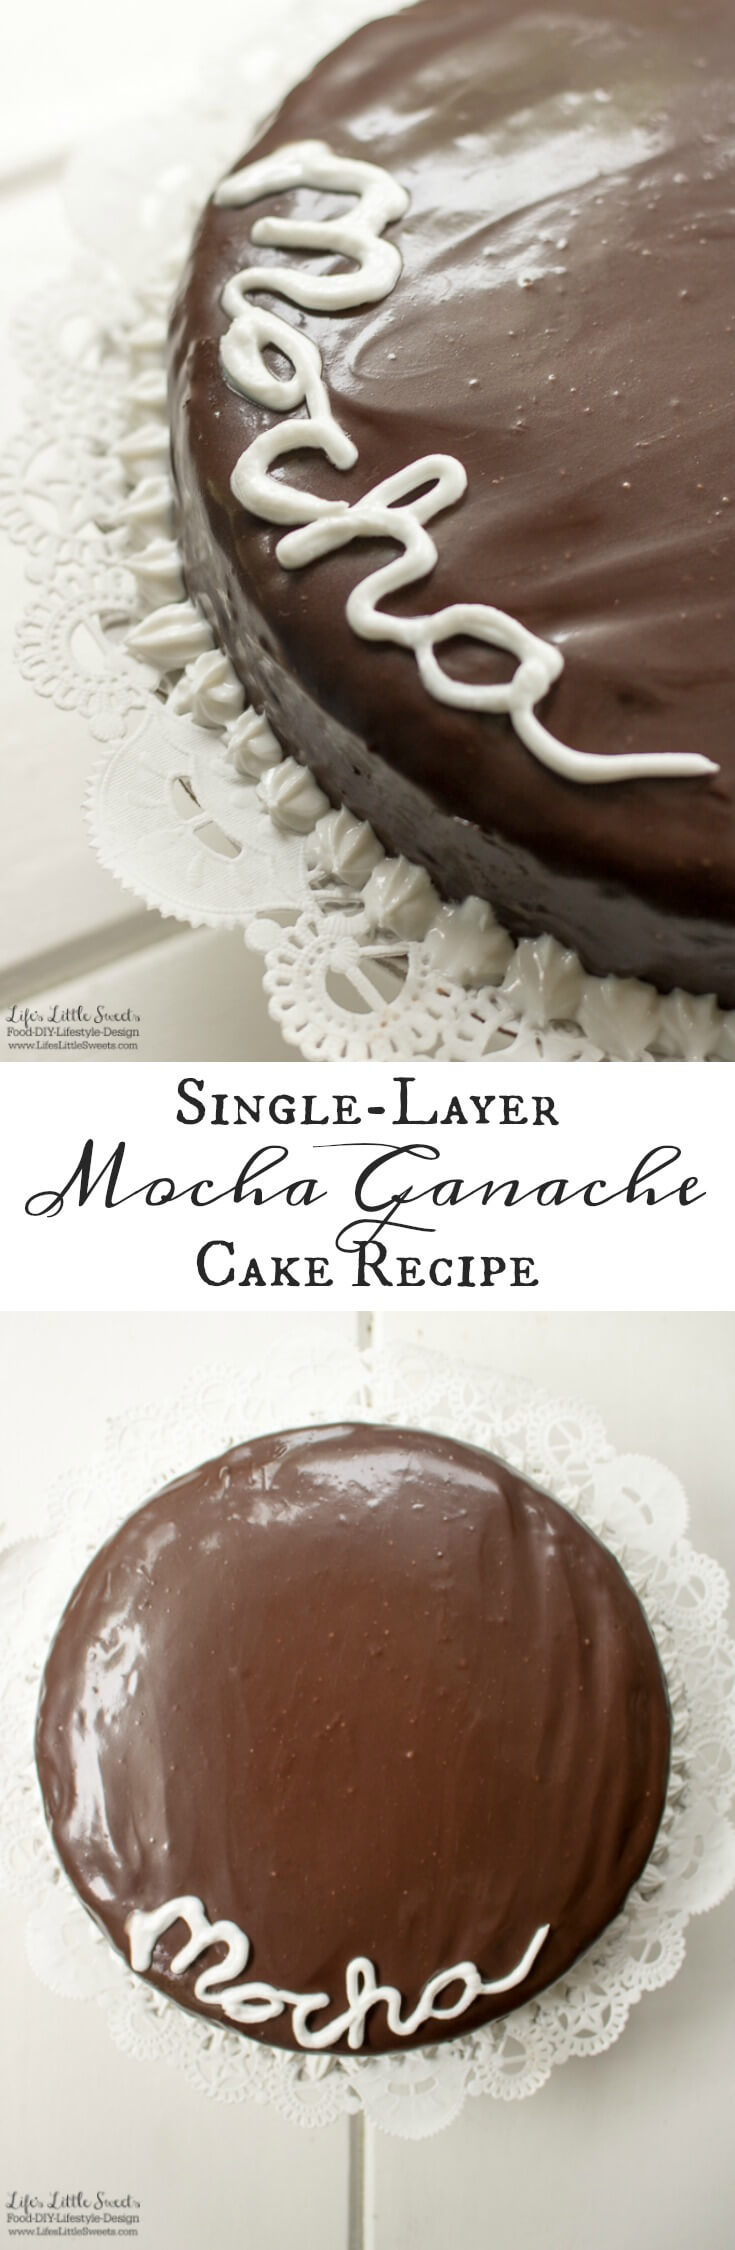 This Single-Layer Mocha Ganache Cake Recipeis a from scratch cake recipe that is easy to make. Topped with creamy and smooth mocha ganache, this mocha cake recipe is perfect for any occasion (12 slices). www.lifeslittlesweets.com